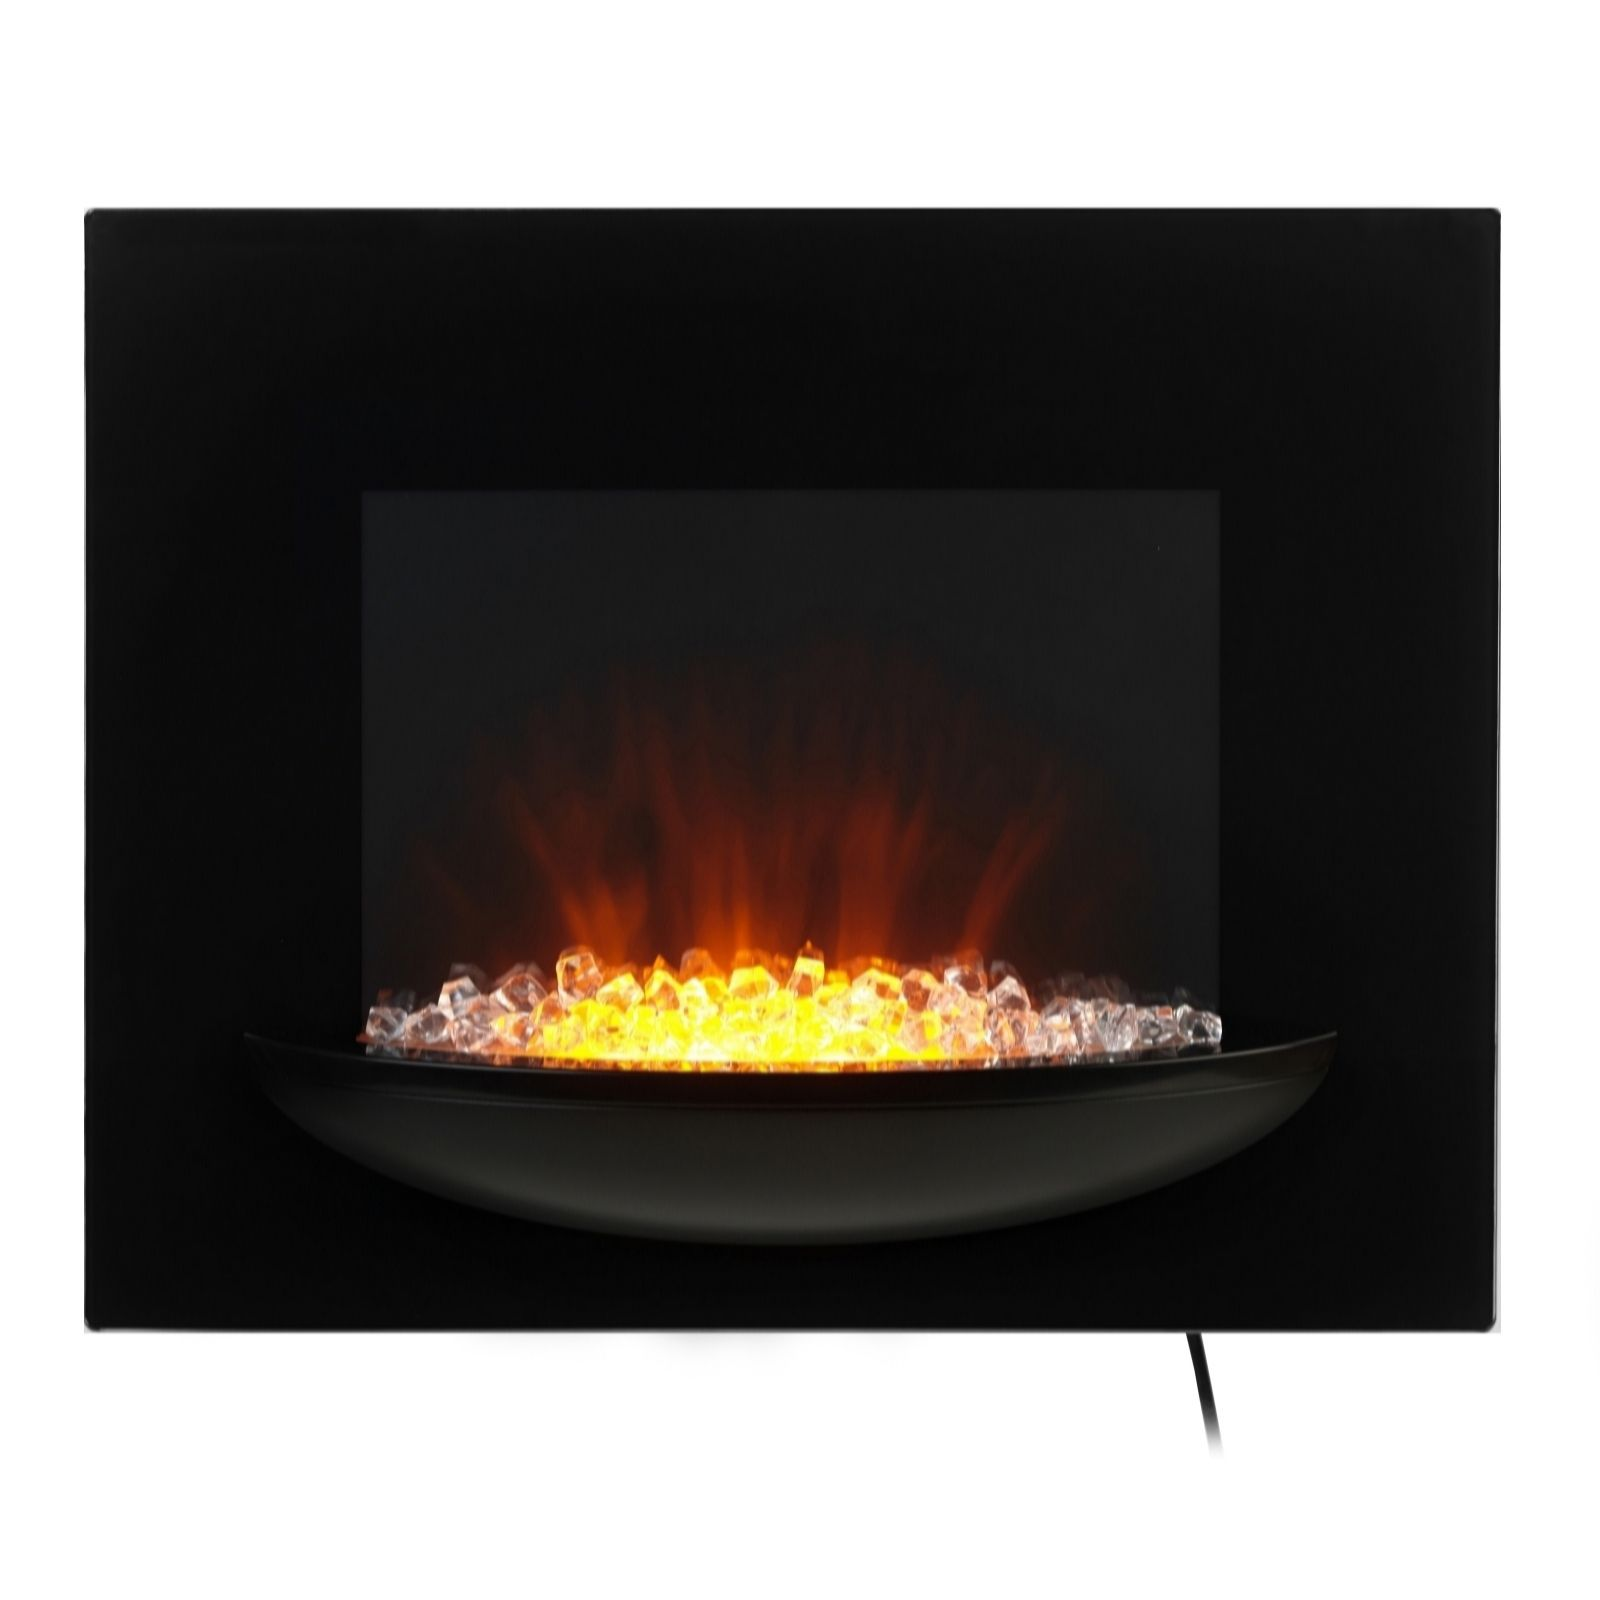 631342d8457 Beldray Attica LED Colour Changing Electric Wall Fire with Bowl - QVC UK